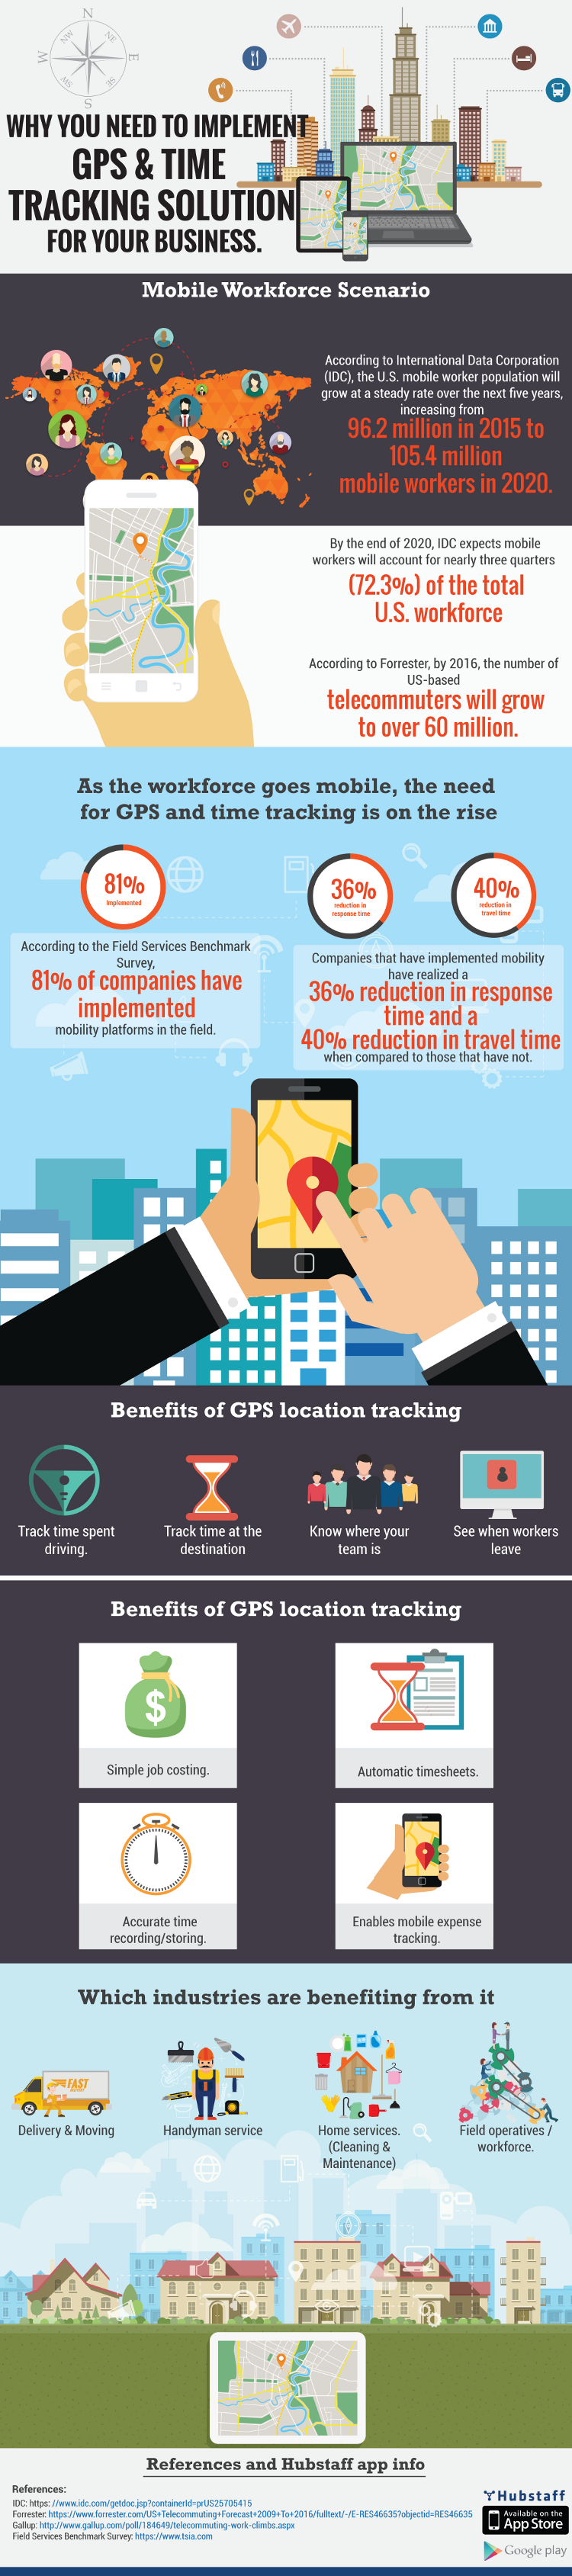 Why Implement a GPS & Time Tracking Solution for Business